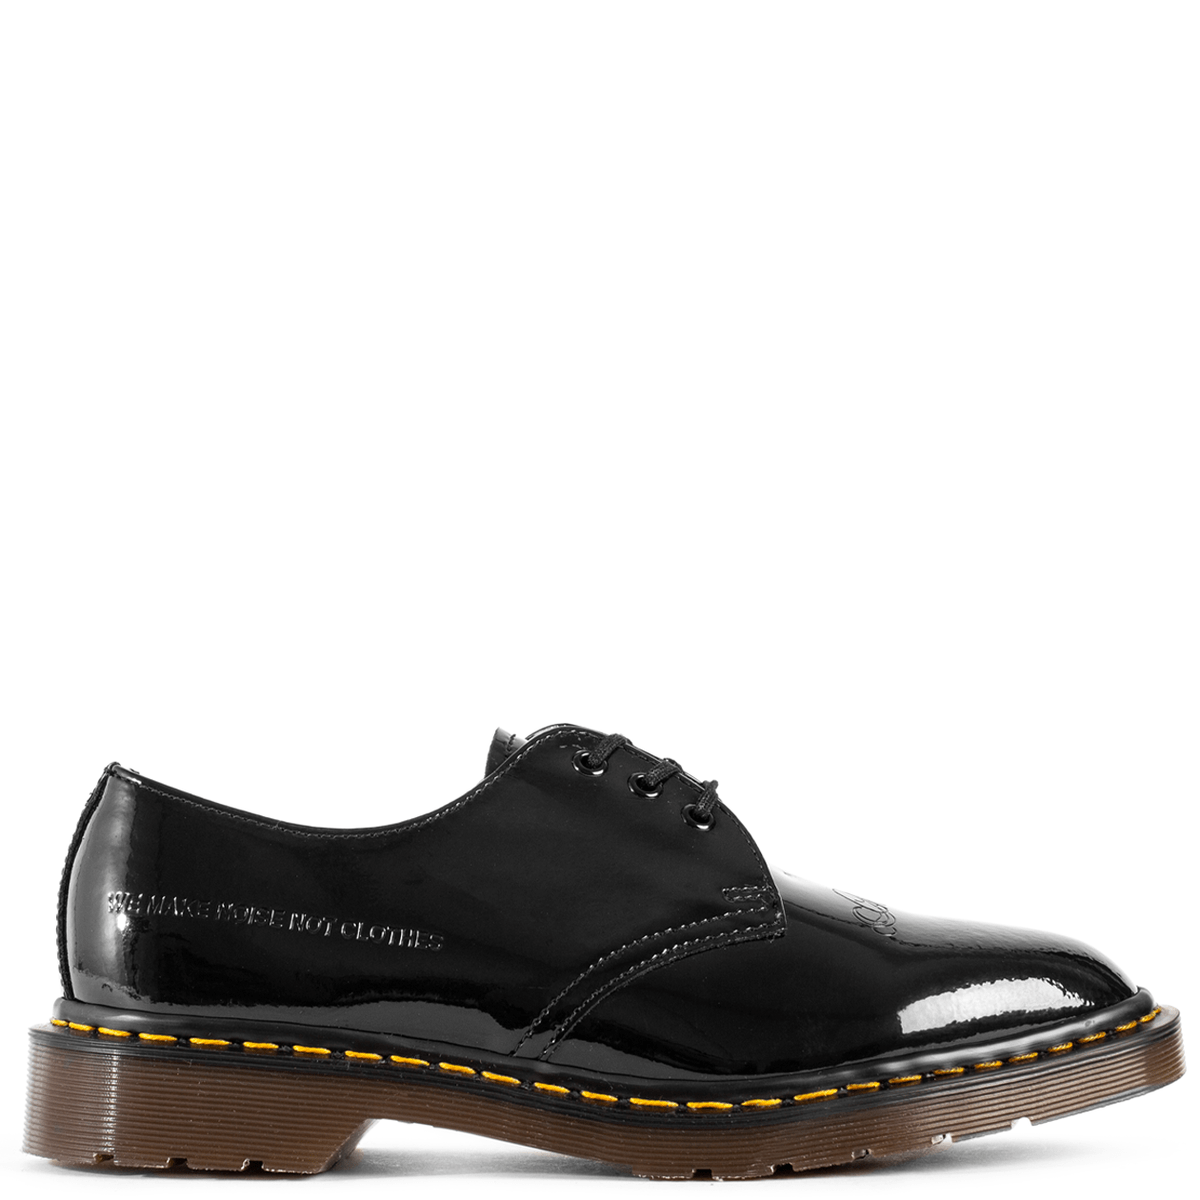 UNDERCOVER Undercover x Dr. Martens